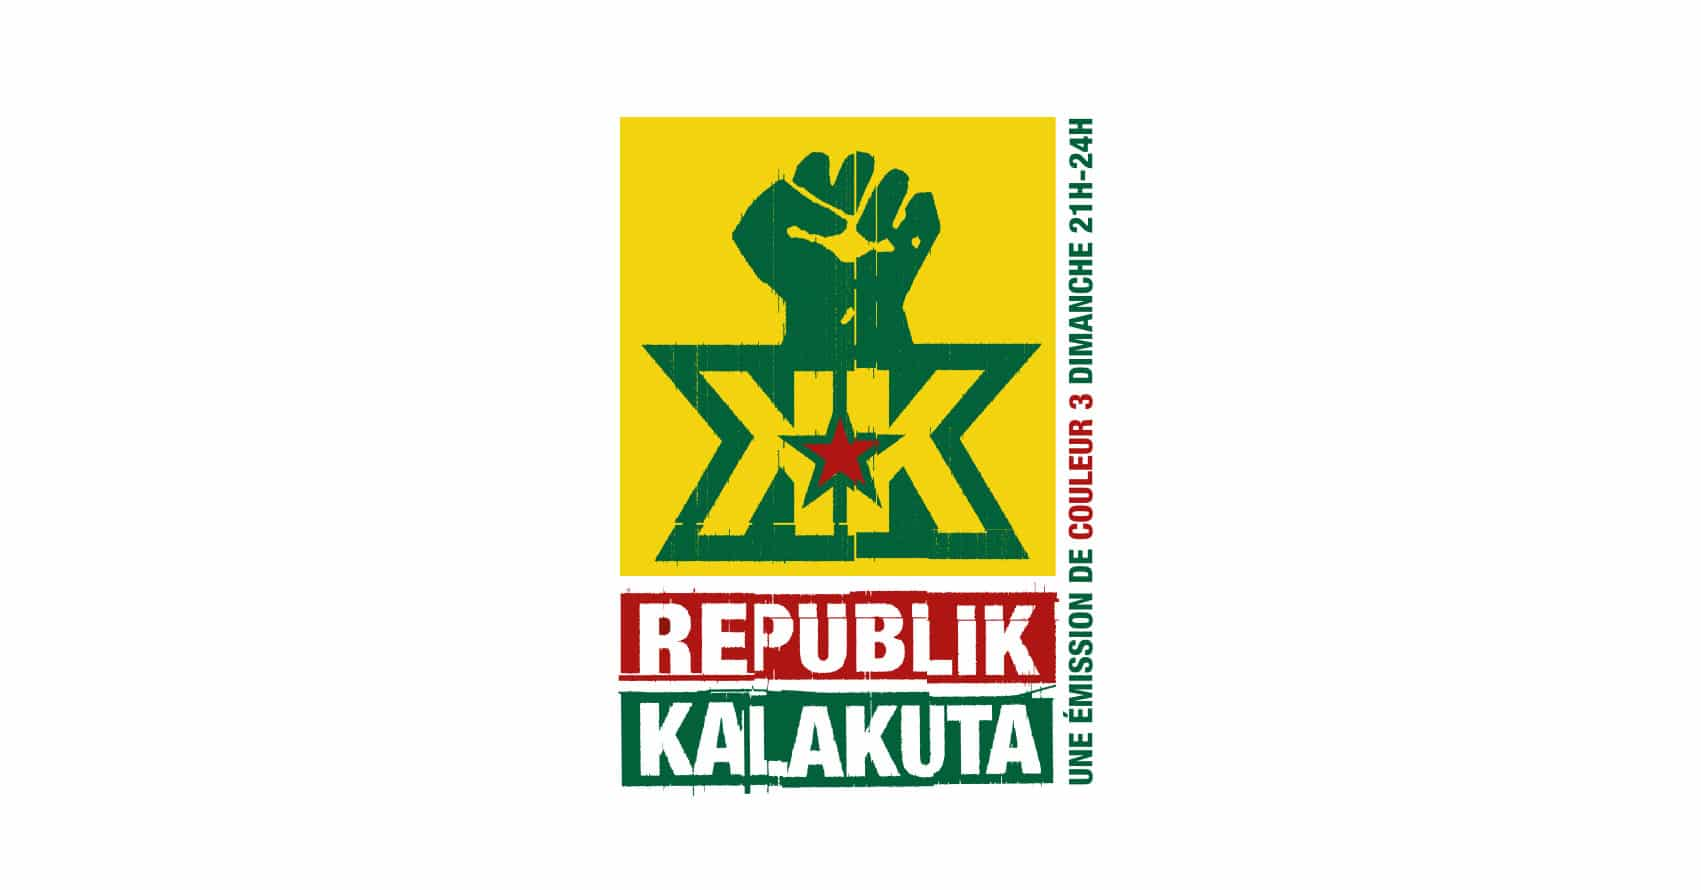 Couleur 3 - Republik Kalakuta - Emission musicale - Logo